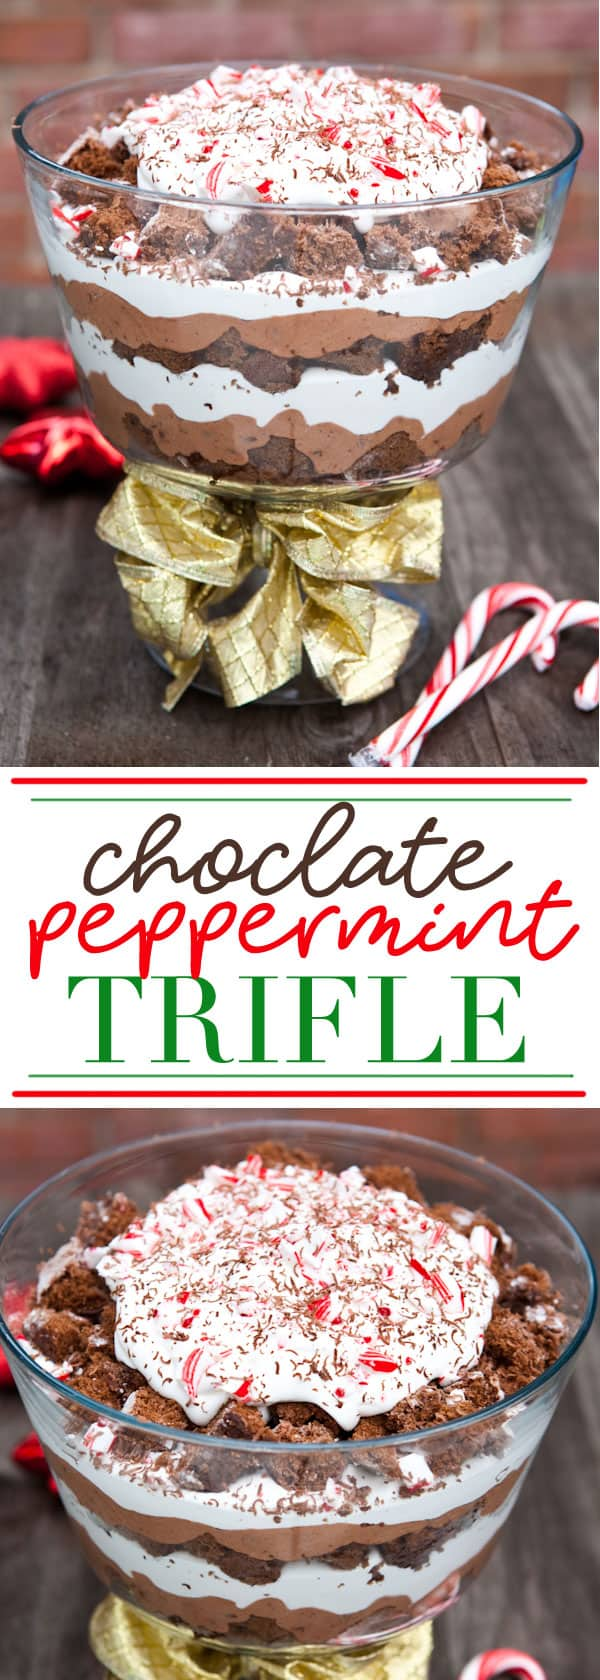 Chocolate Peppermint Trifle #chocolate #christmas #holiday #peppermint #trifle